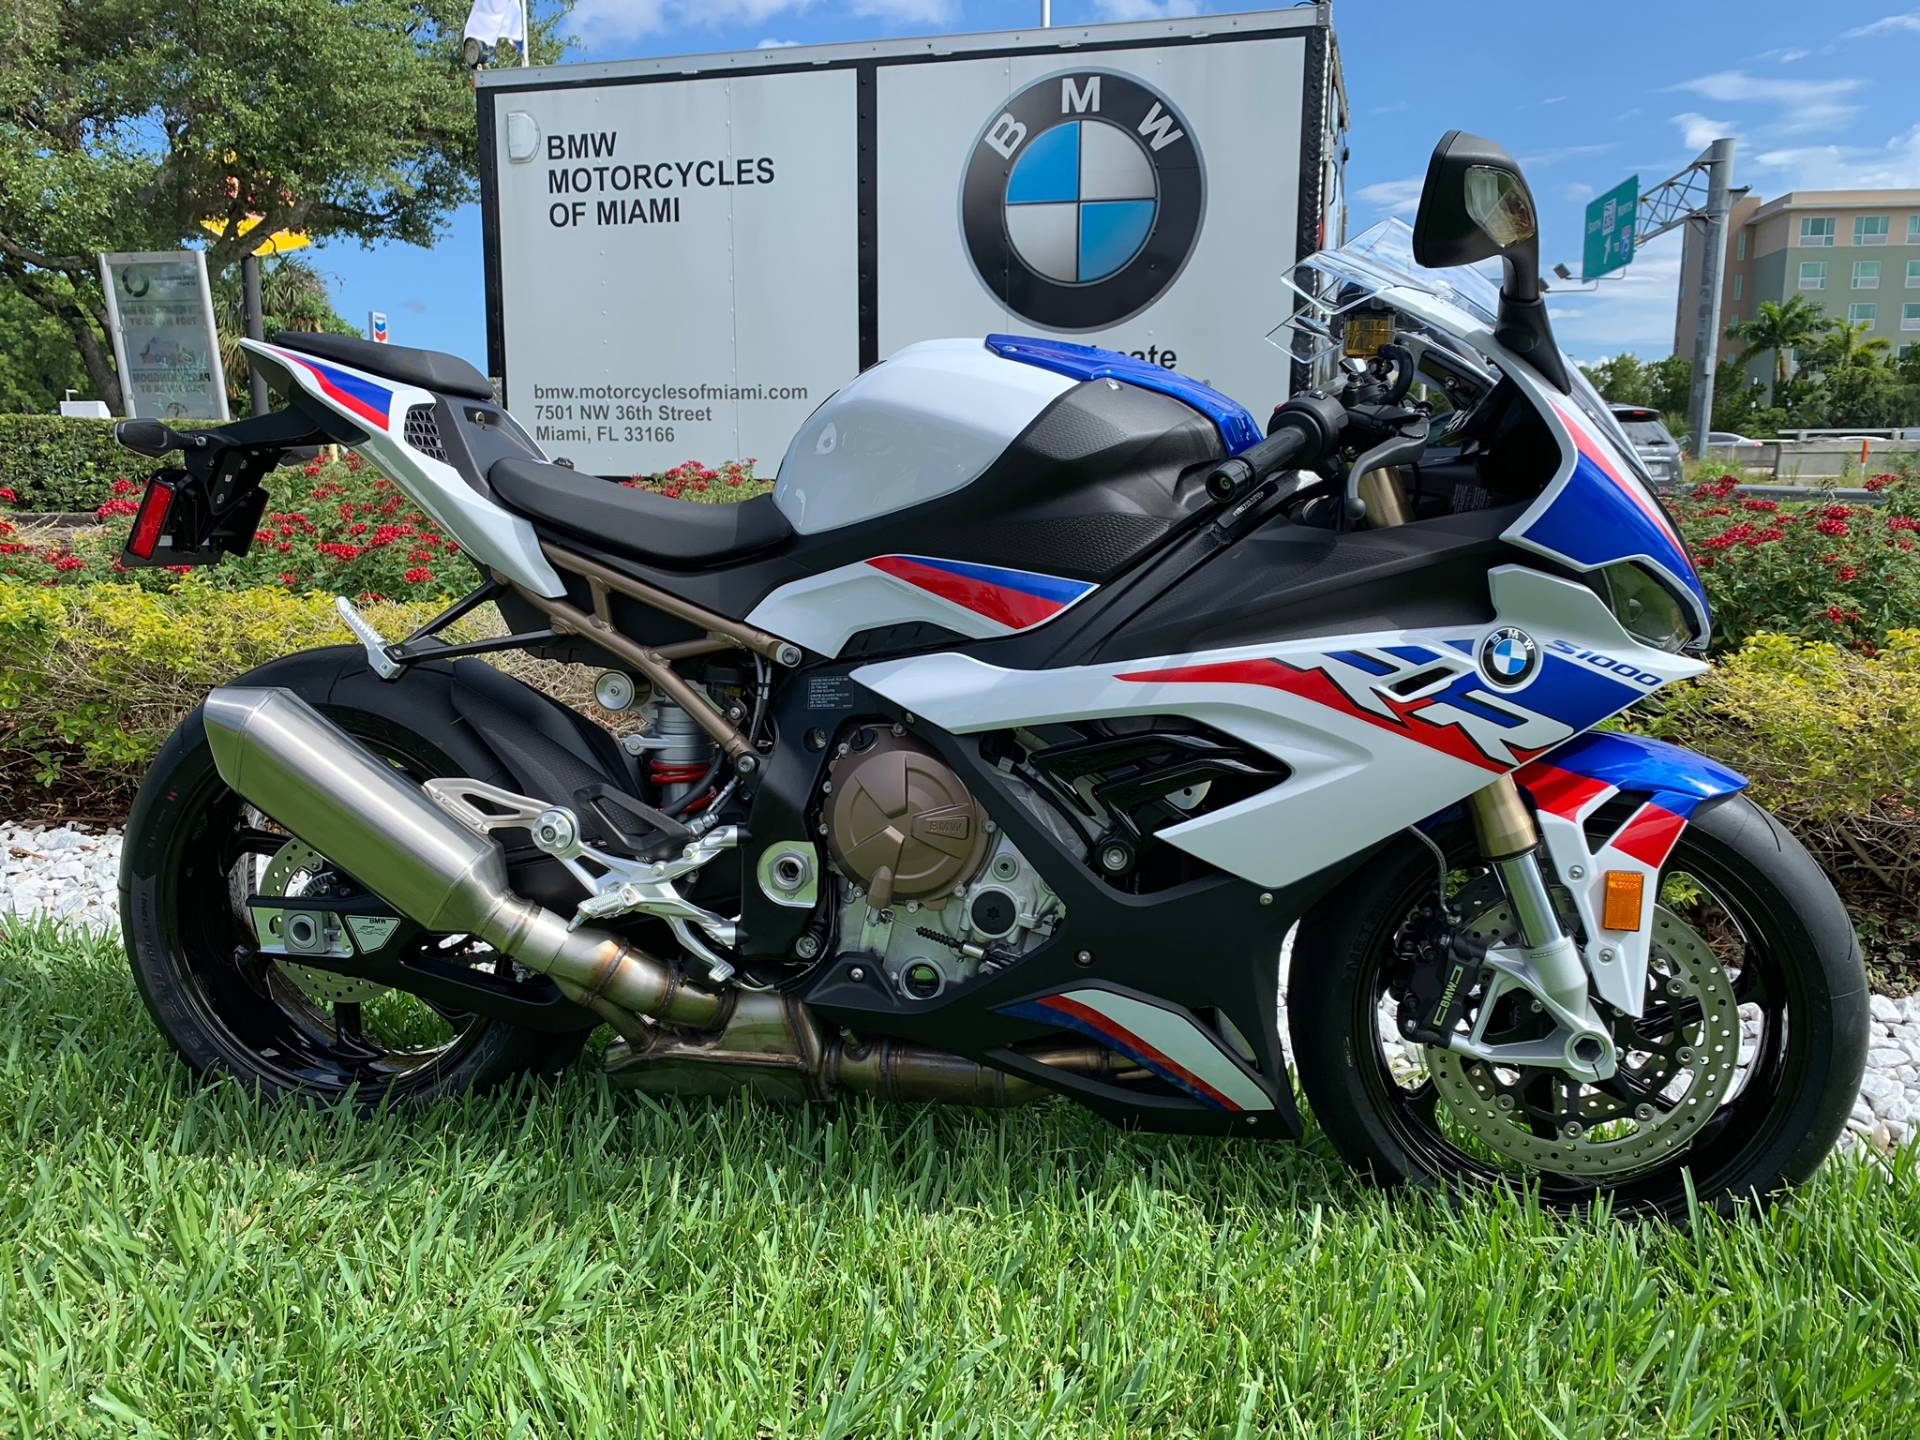 New 2020 BMW S 1000 RR for sale, BMW S 1000RR for sale, BMW Motorcycle S1000RR, new BMW RR, Sport. BMW Motorcycles of Miami, Motorcycles of Miami, Motorcycles Miami, New Motorcycles, Used Motorcycles, pre-owned. #BMWMotorcyclesOfMiami #MotorcyclesOfMiami #MotorcyclesMiami - Photo 28